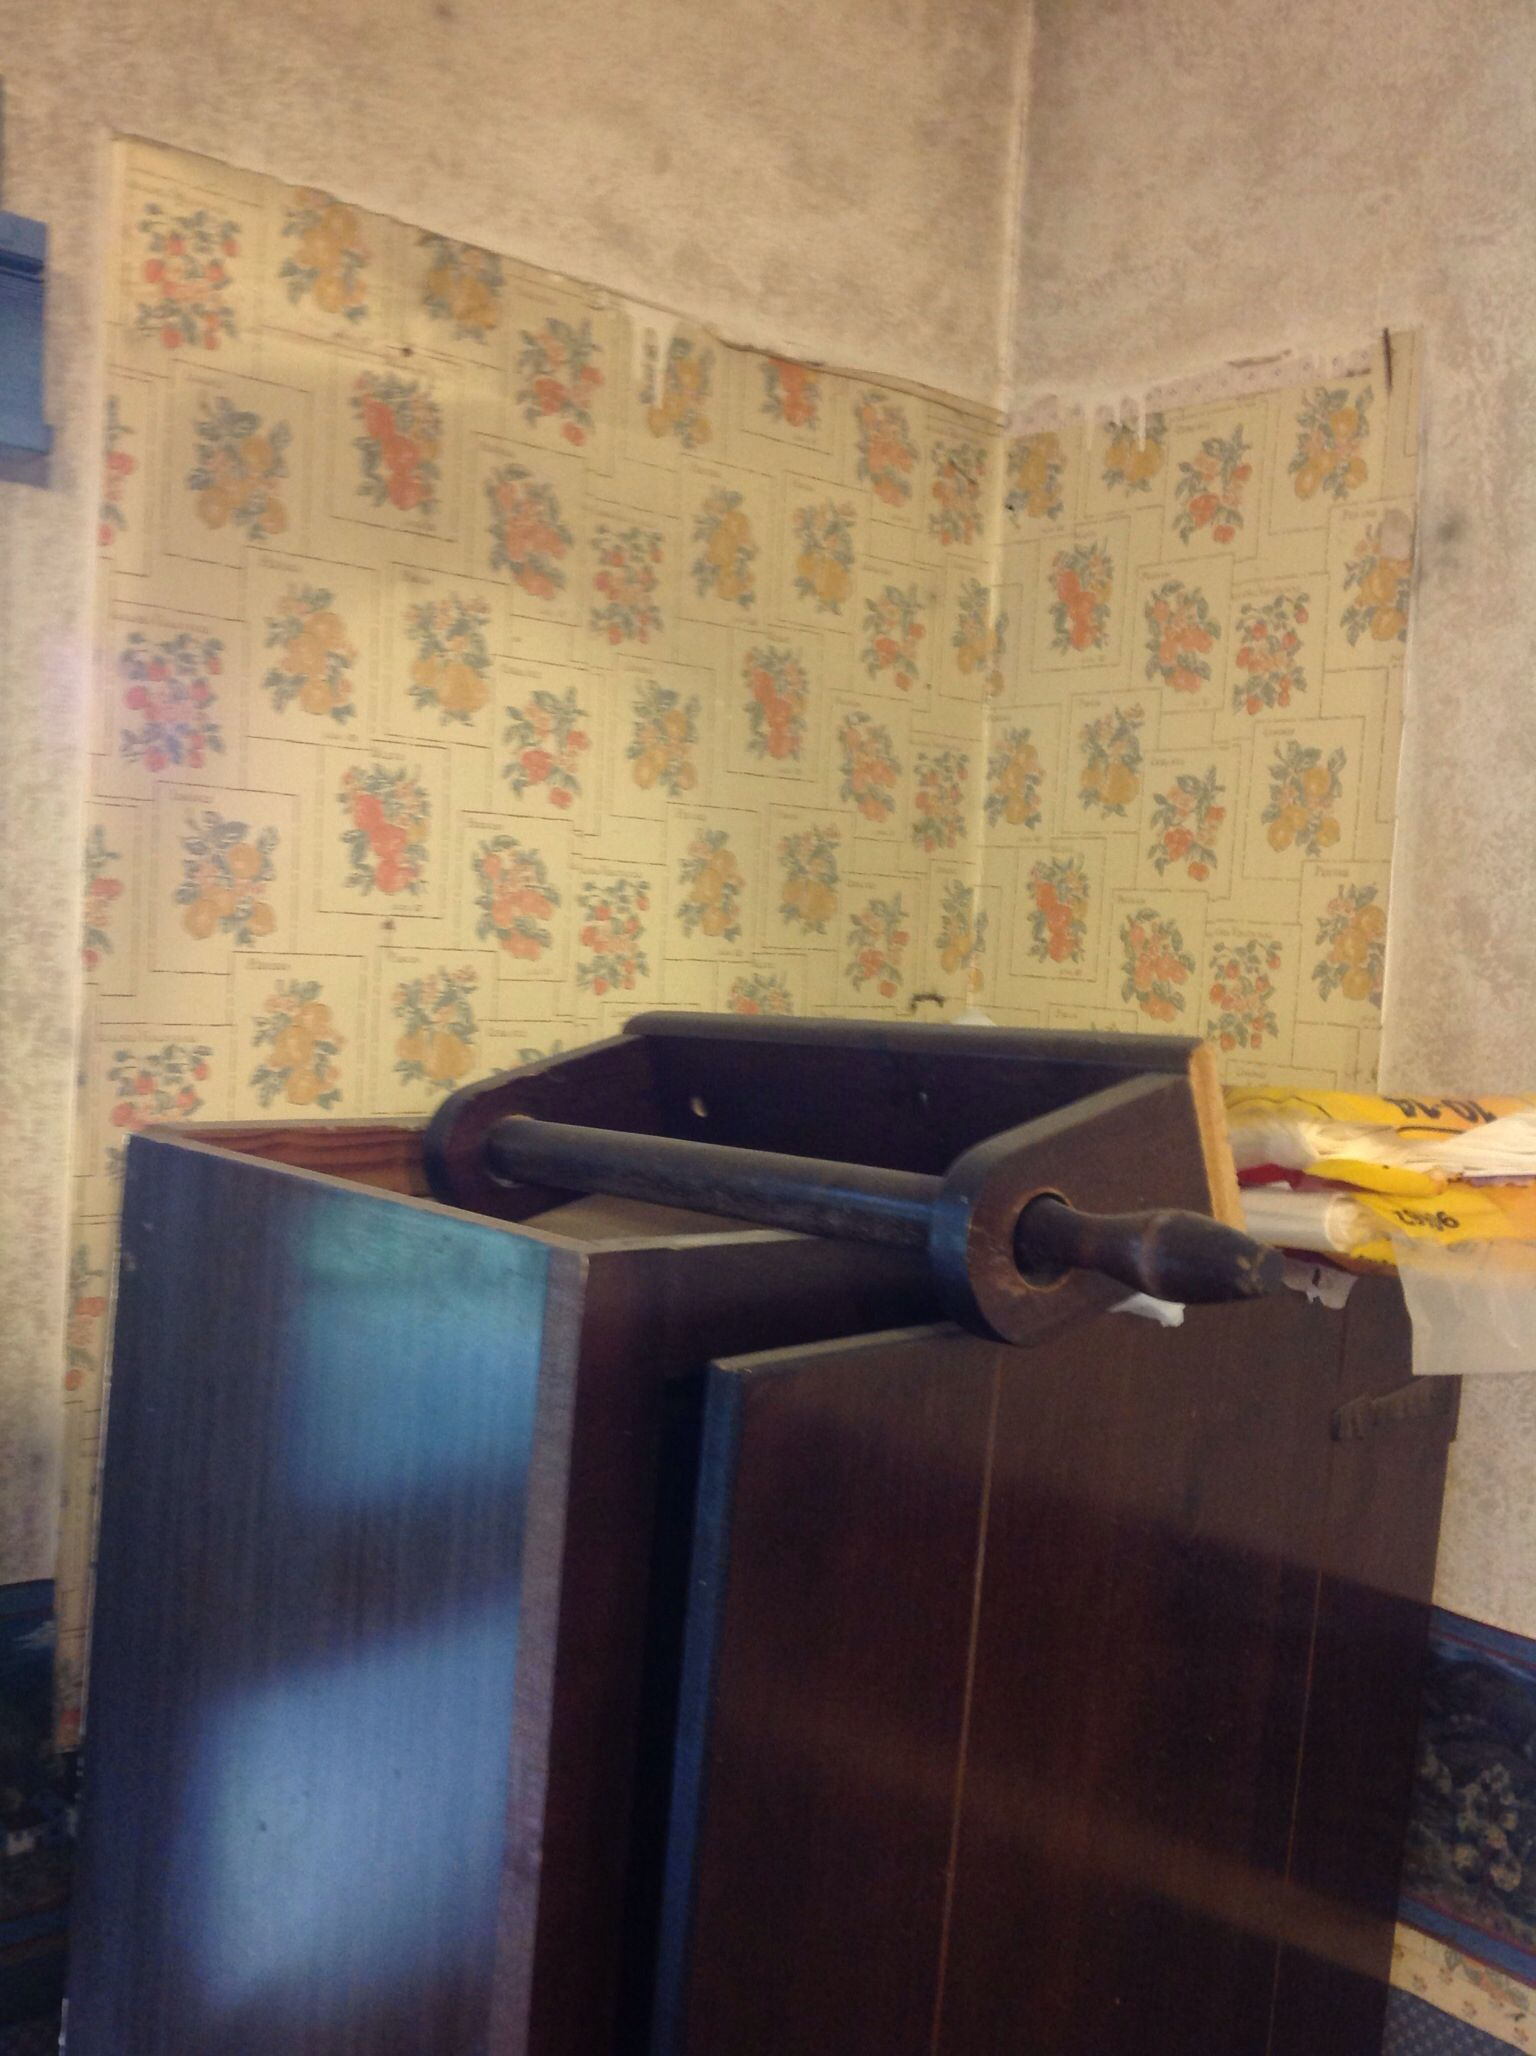 Cabinets coming down revealed house wallpaper history.